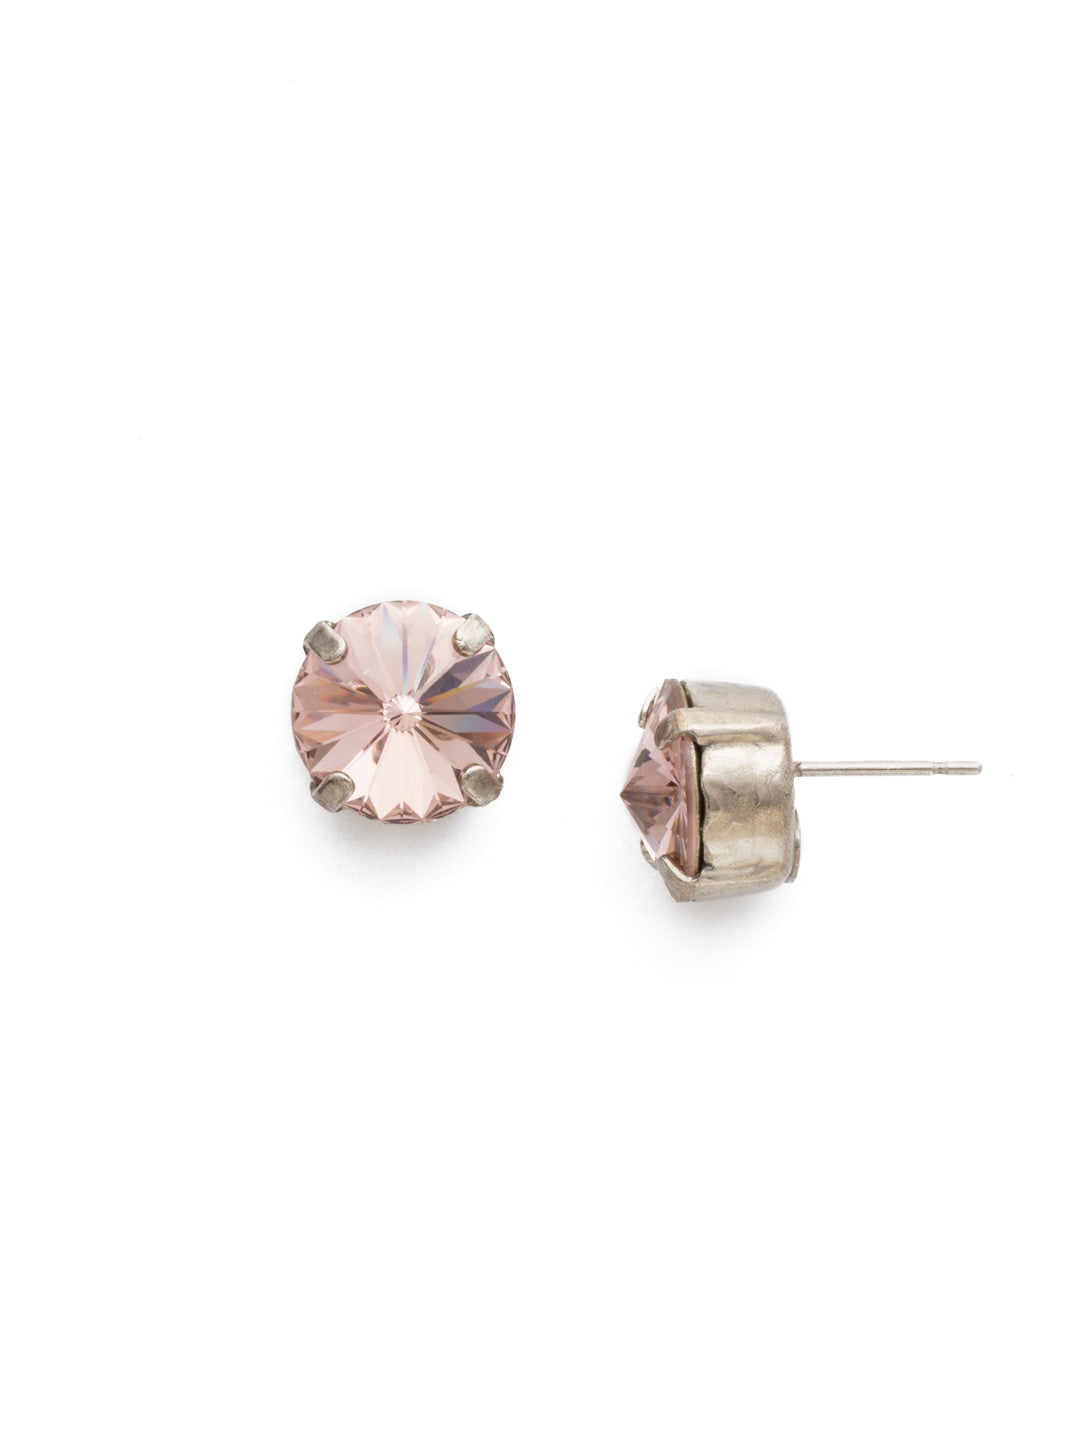 Round Crystal Stud Earrings - ECM14ASVIN